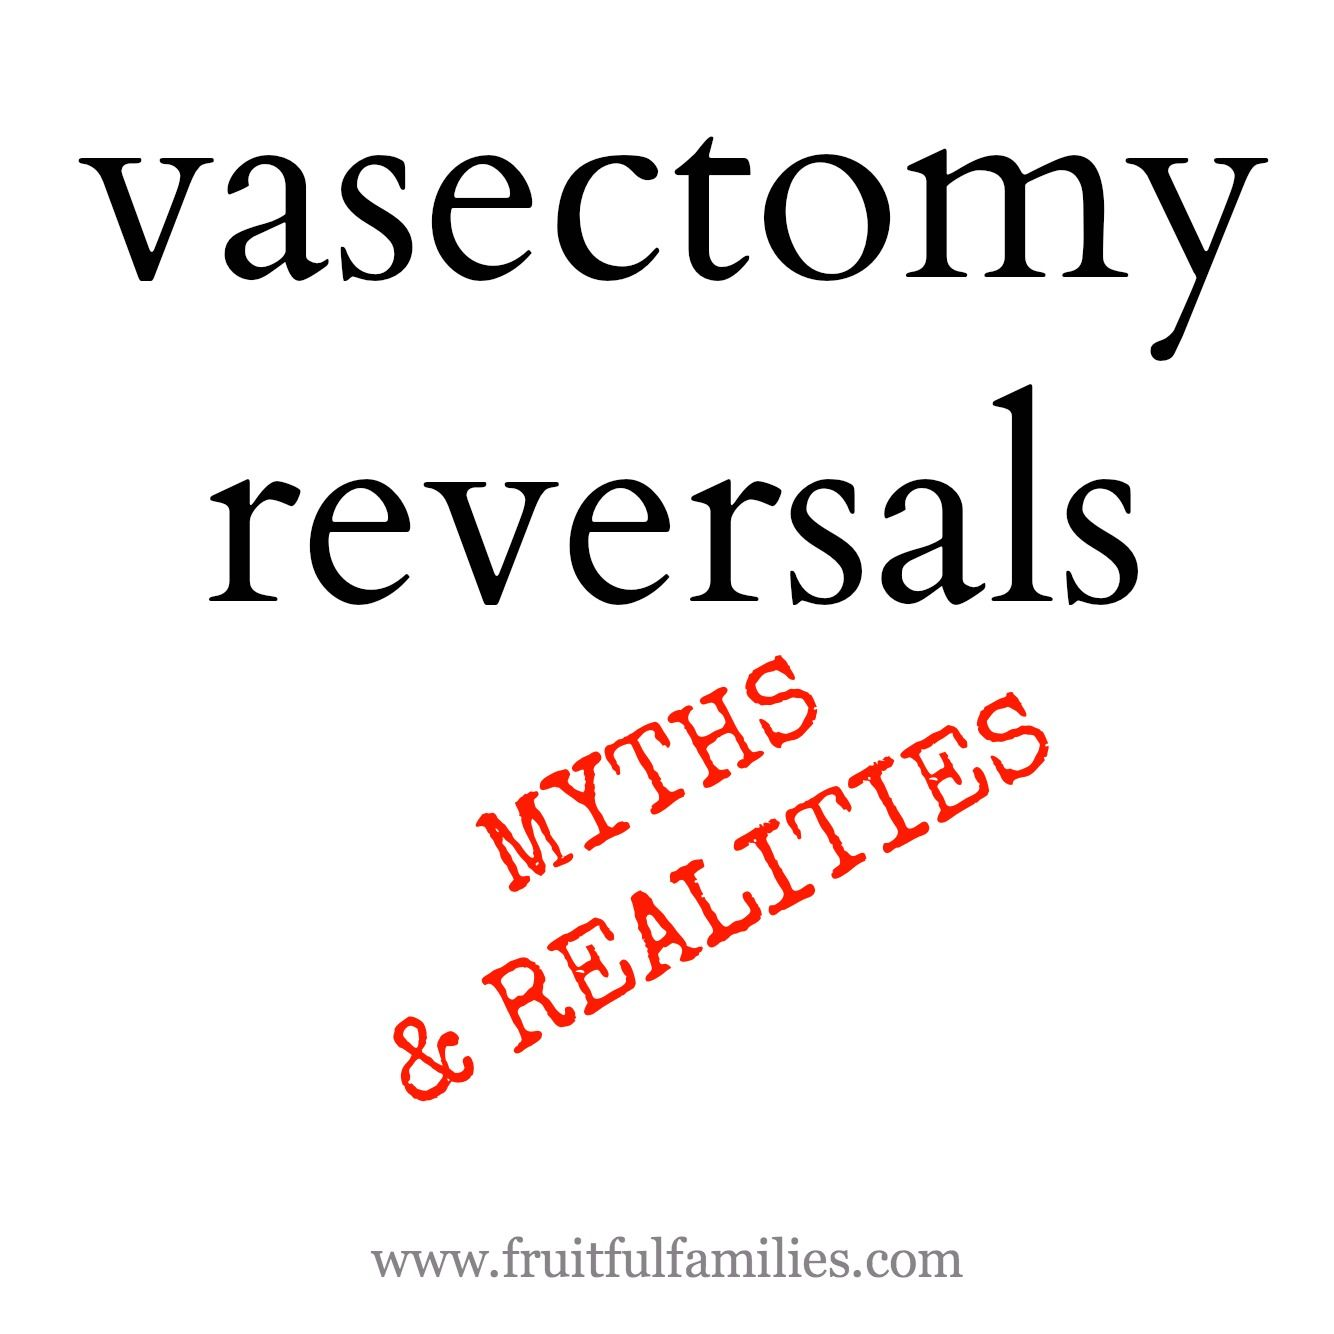 Male infertility: myths and reality